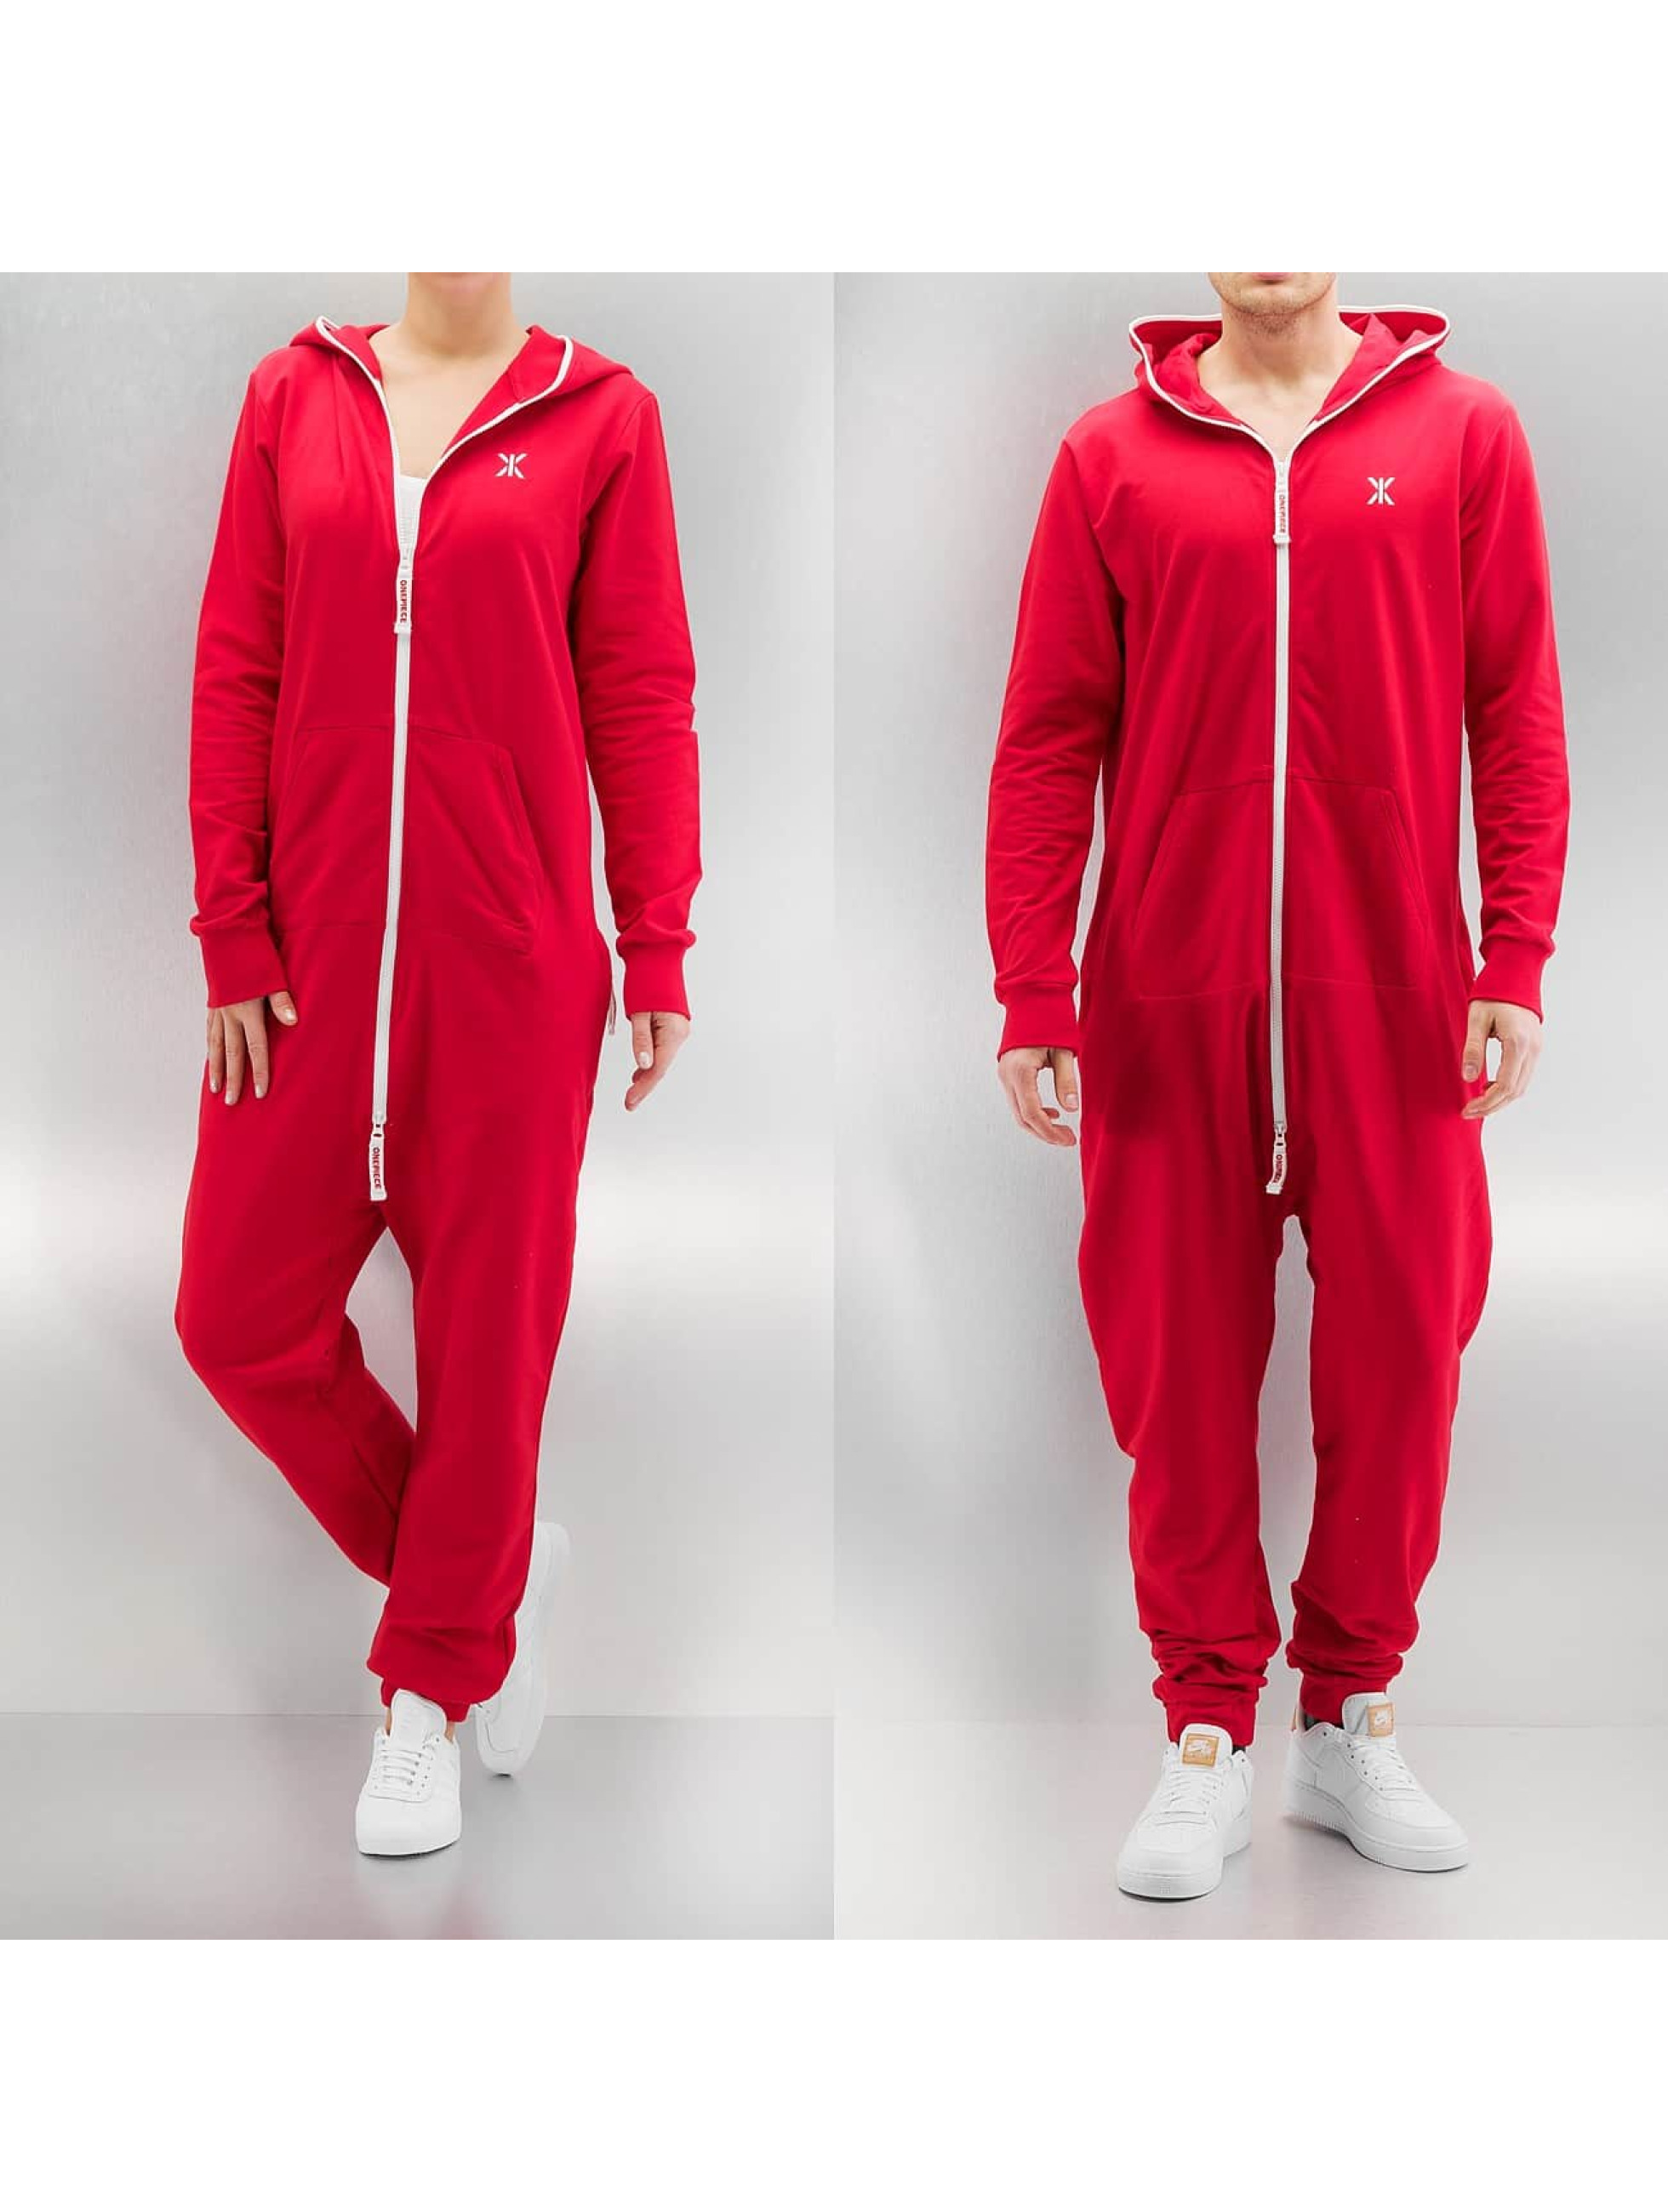 OnePiece Männer,Frauen Jumpsuit Original Onesie New Fit in rot